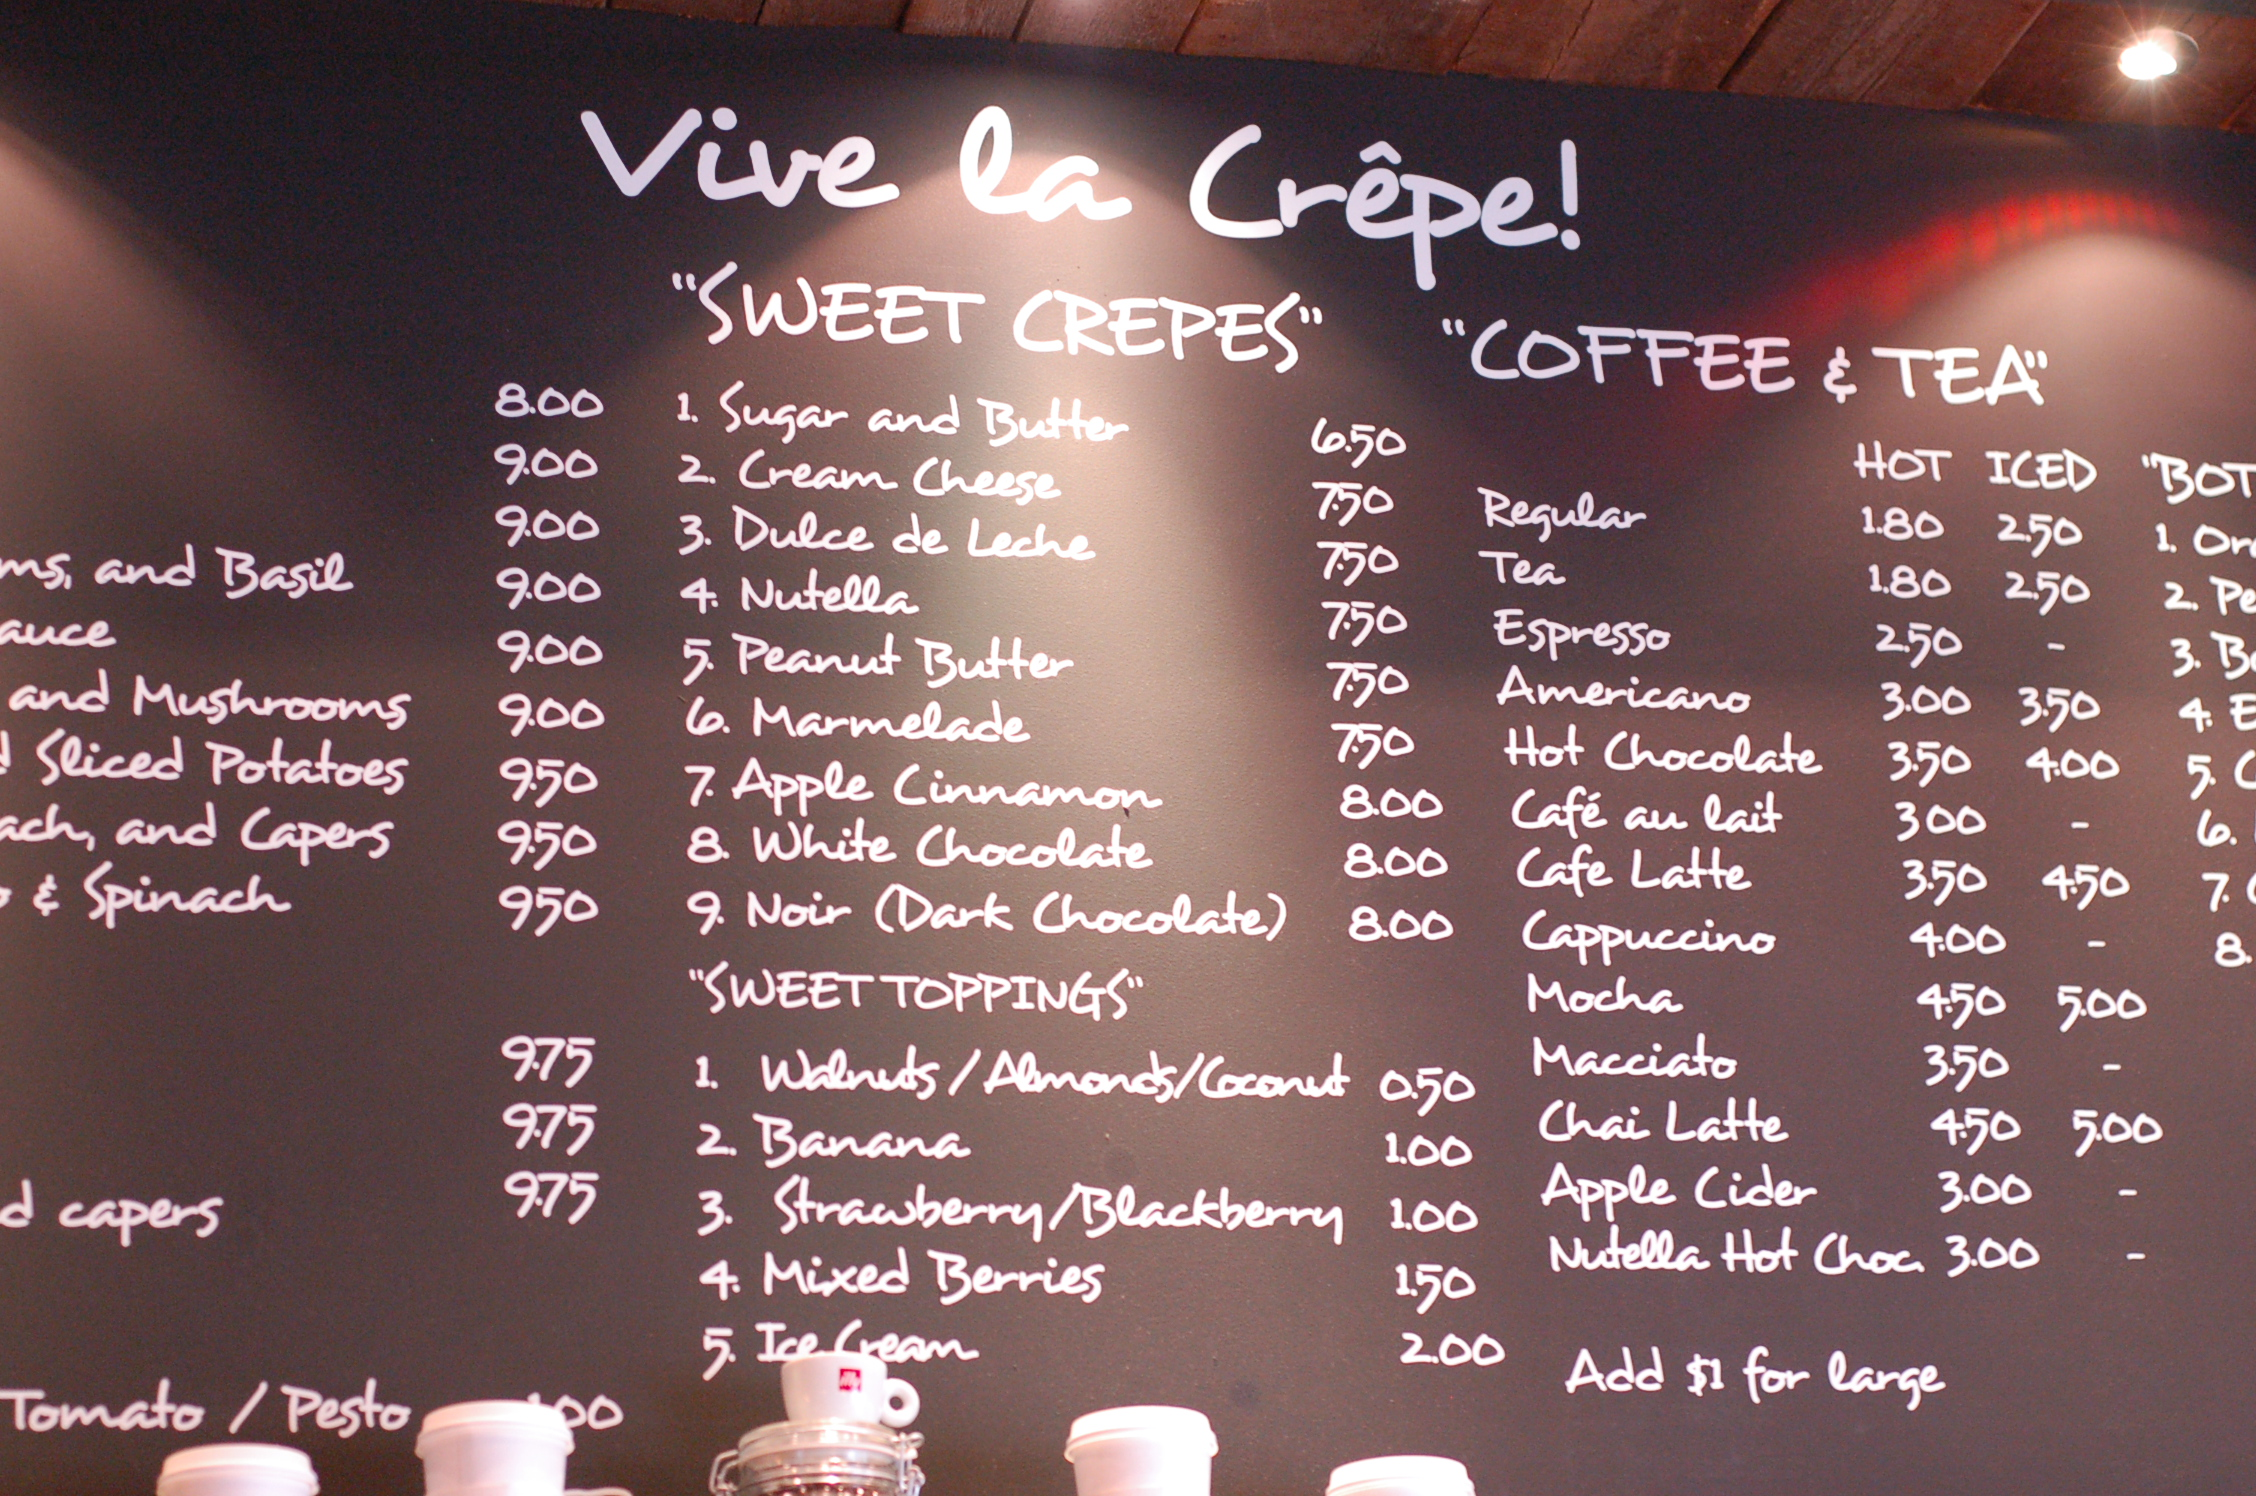 Crepe Cafe Square Menu